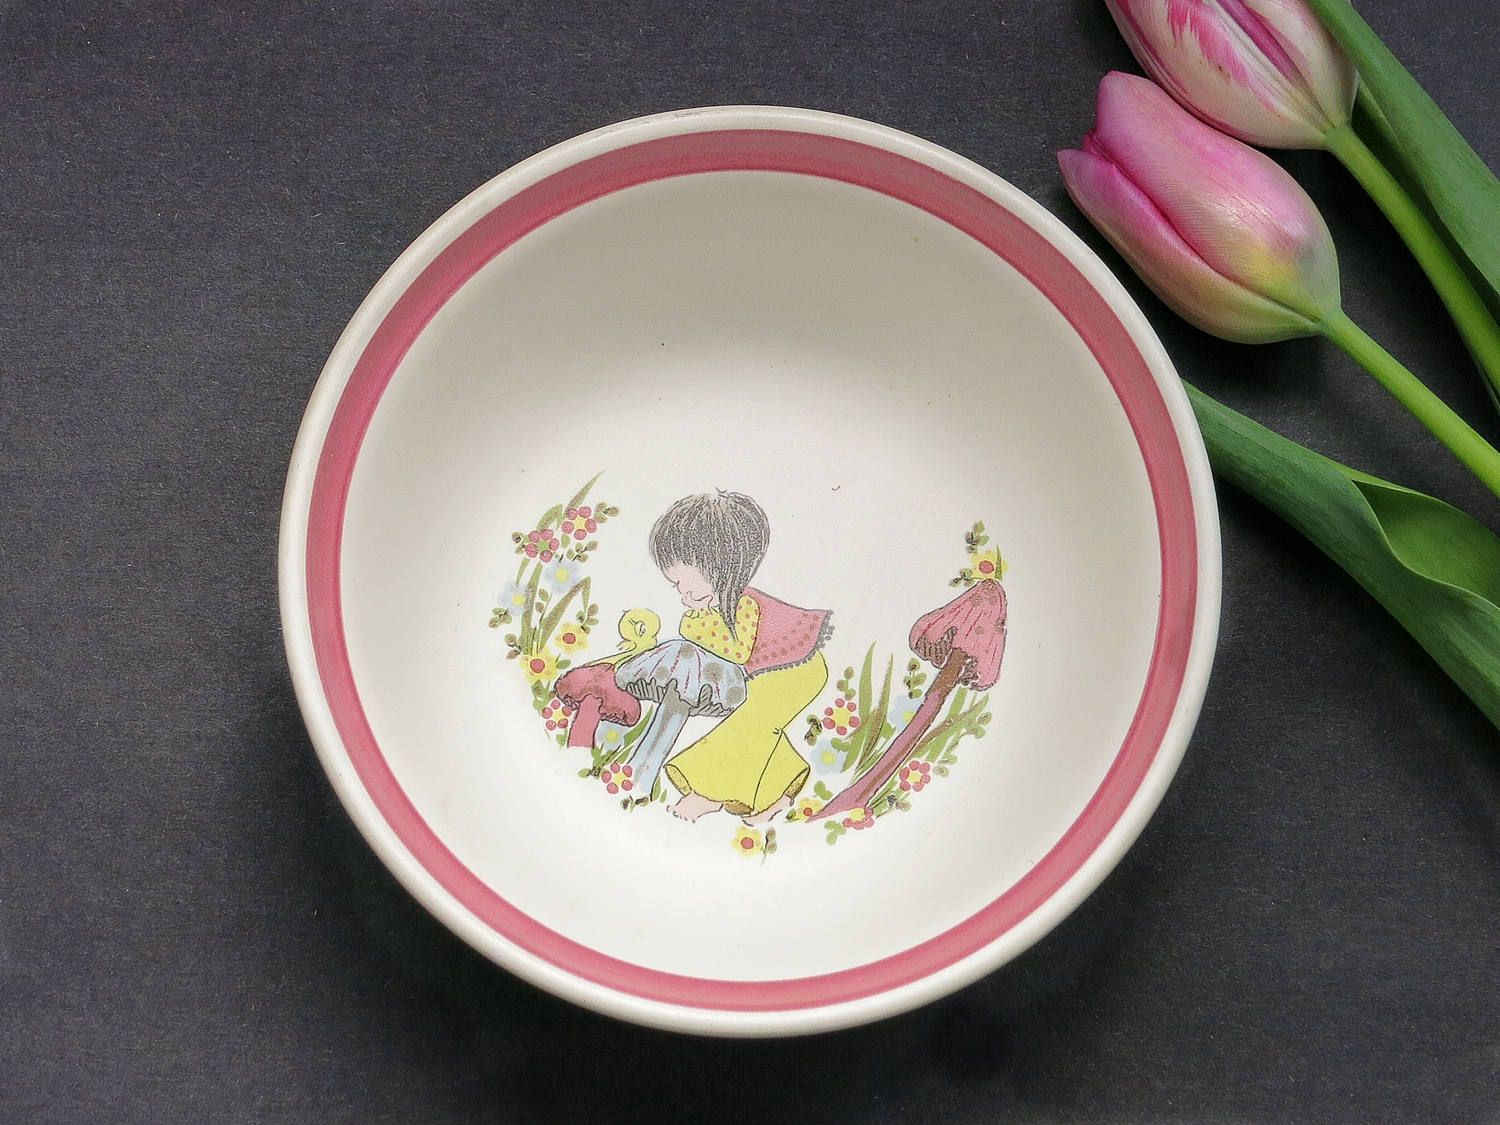 Denby Dream Weaver Pink Cereal Bowl - 1970s Denby Dreamweavers Soup Bowl - Denby England Childrenu0027s & Denby Dream Weavers Pink Cereal Bowl - 1970s Denby Dreamweavers Soup ...